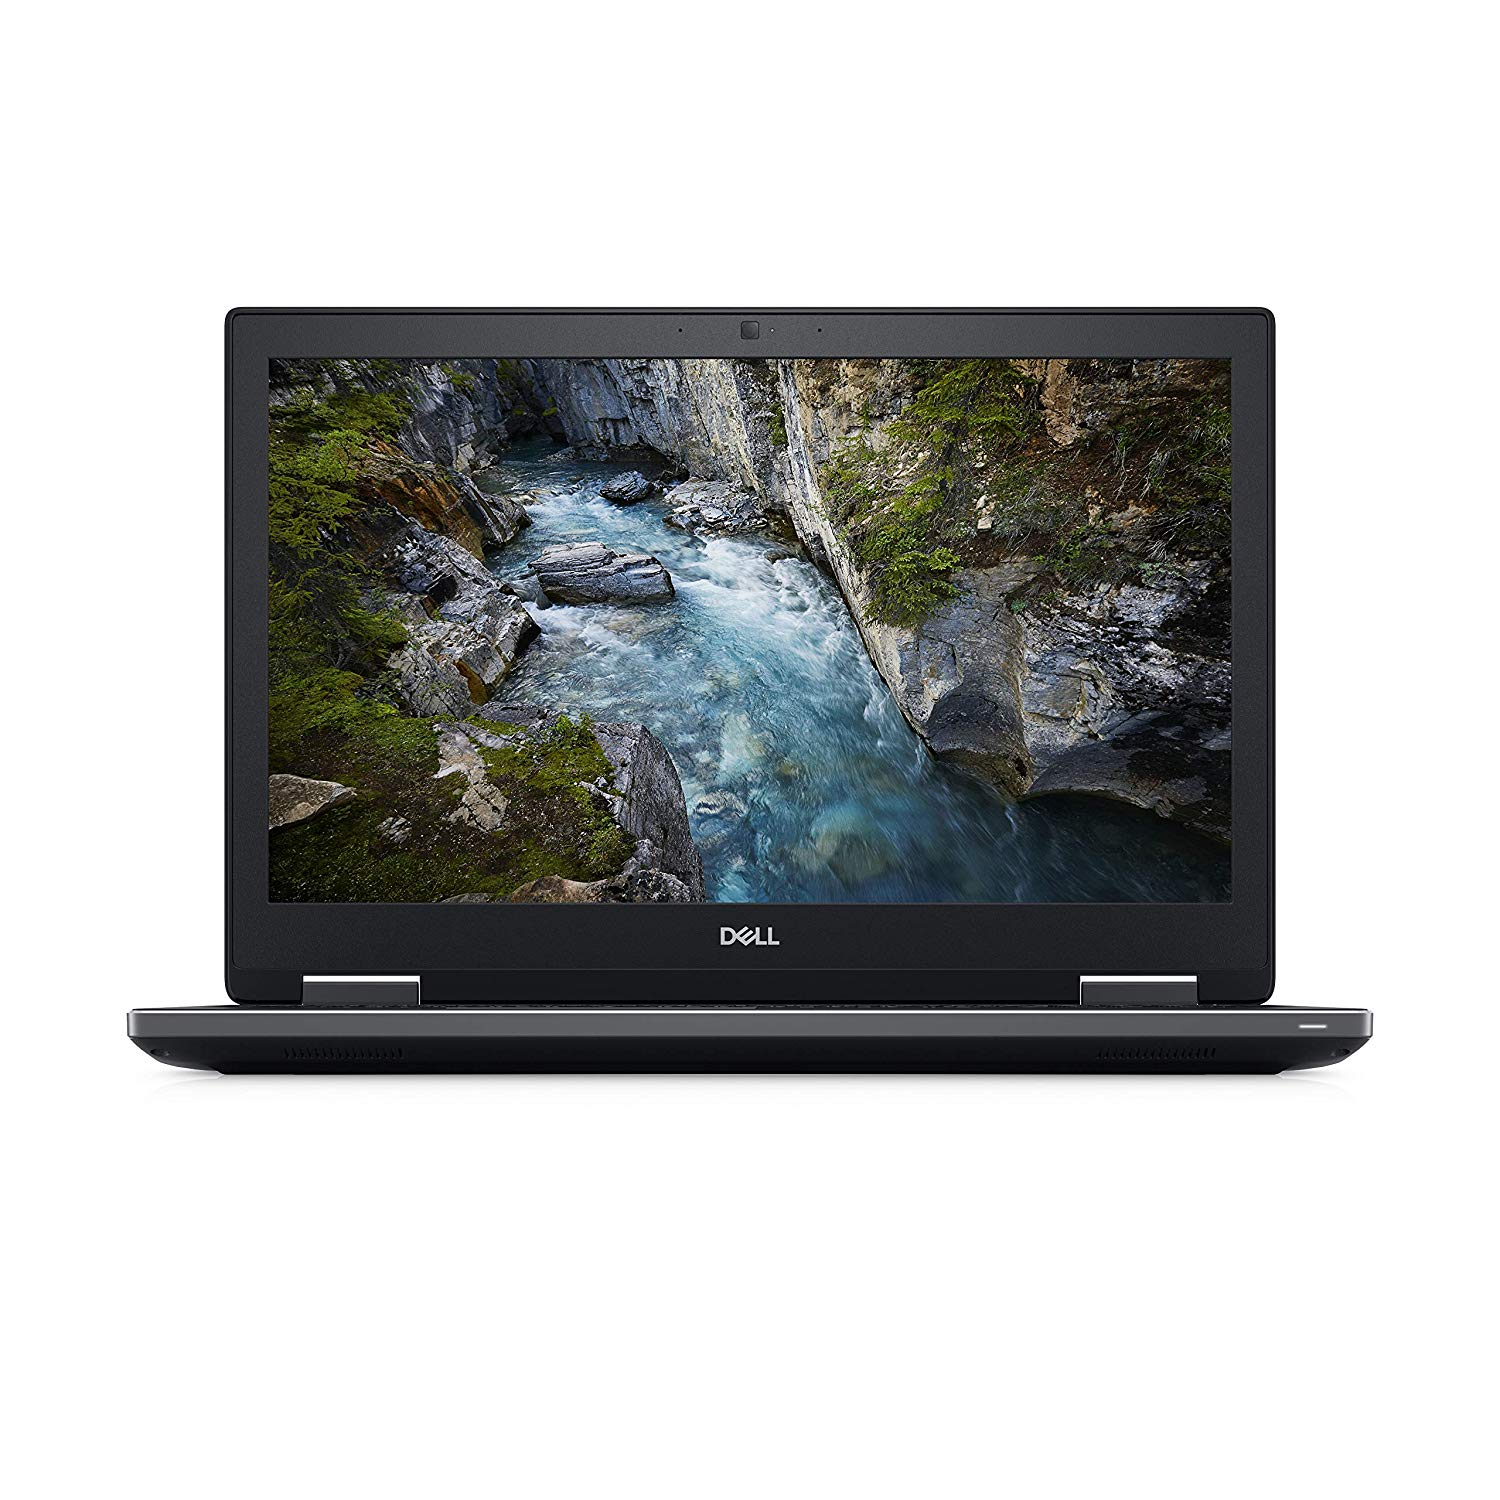 dell 7730 laptop